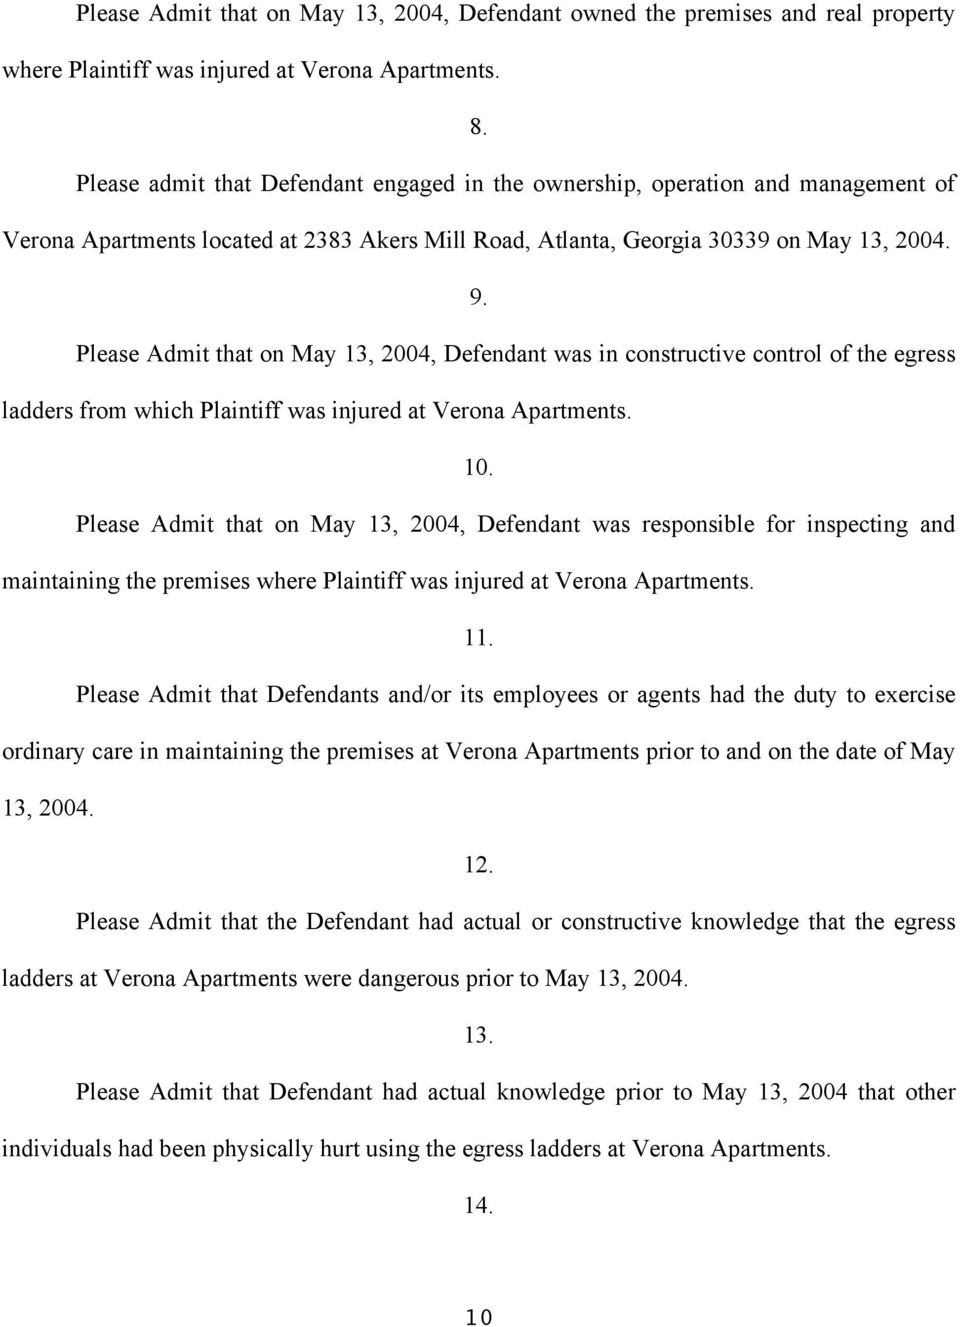 Please Admit that on May 13, 2004, Defendant was in constructive control of the egress ladders from which Plaintiff was injured at Verona Apartments. 10.